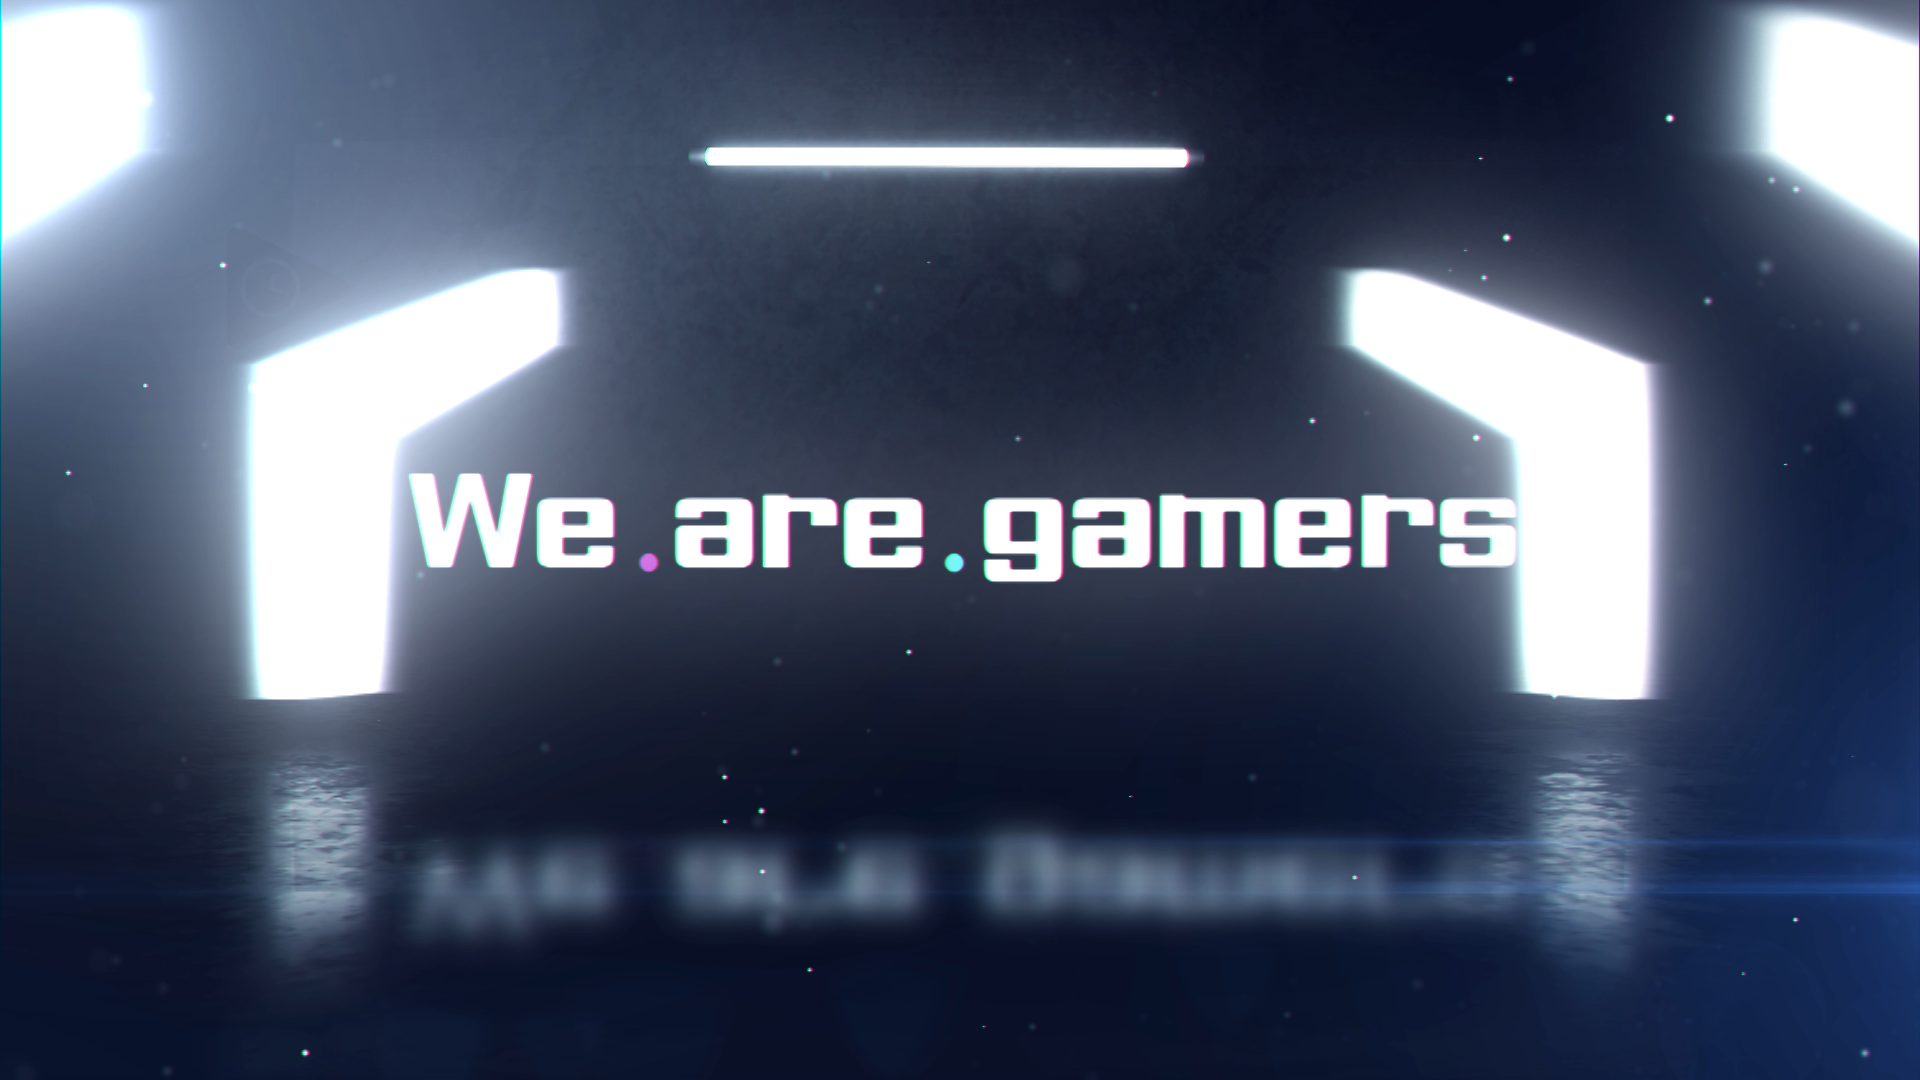 We are Gamers